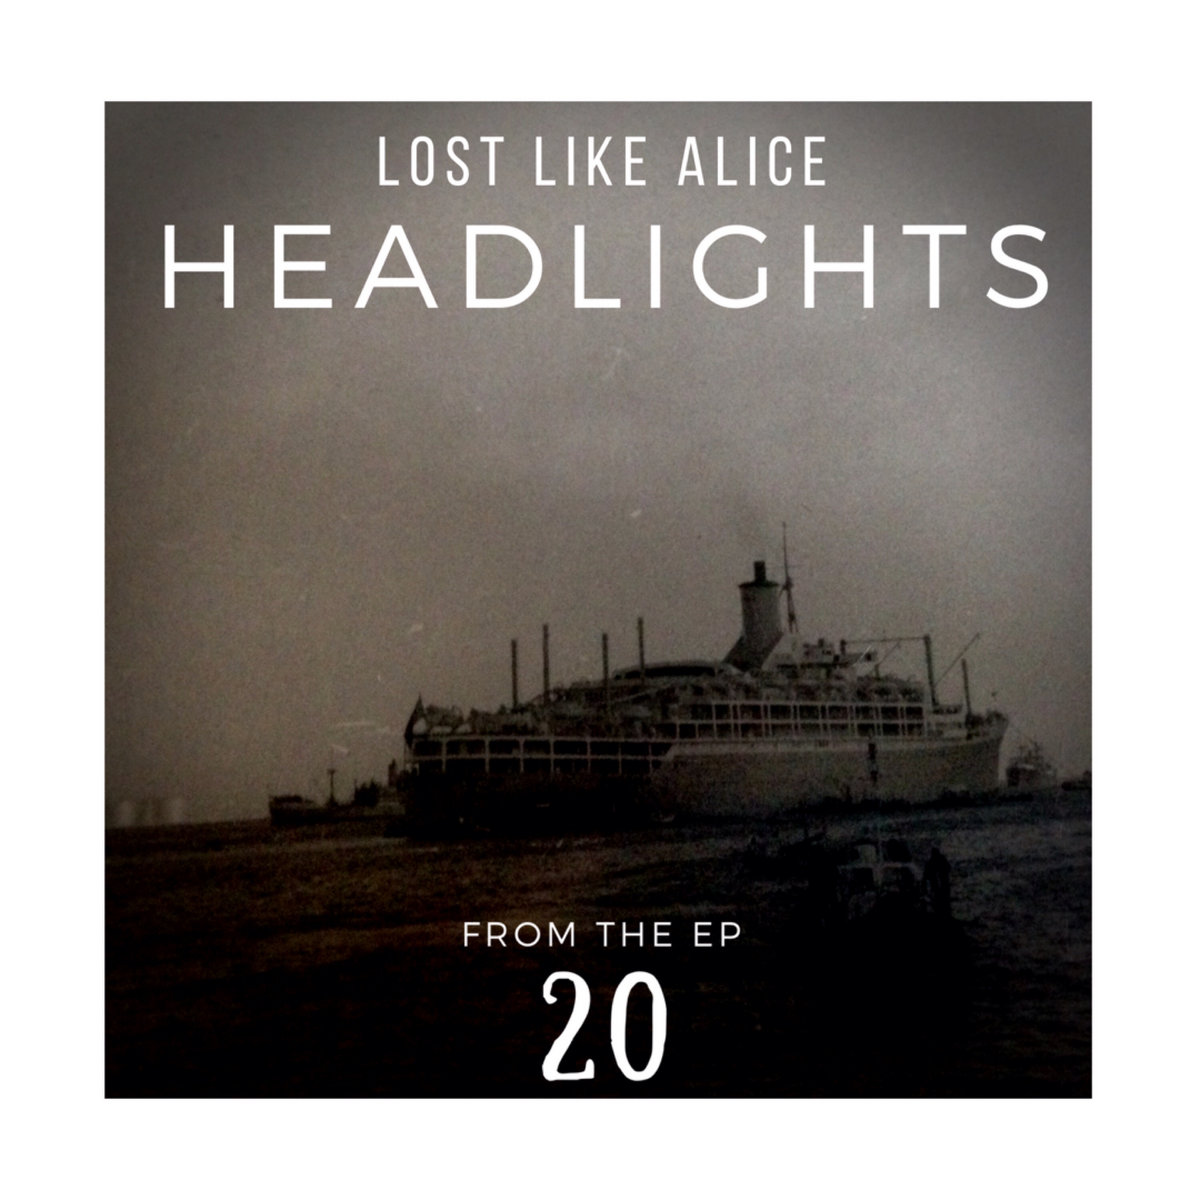 Headlights by Lost Like Alice